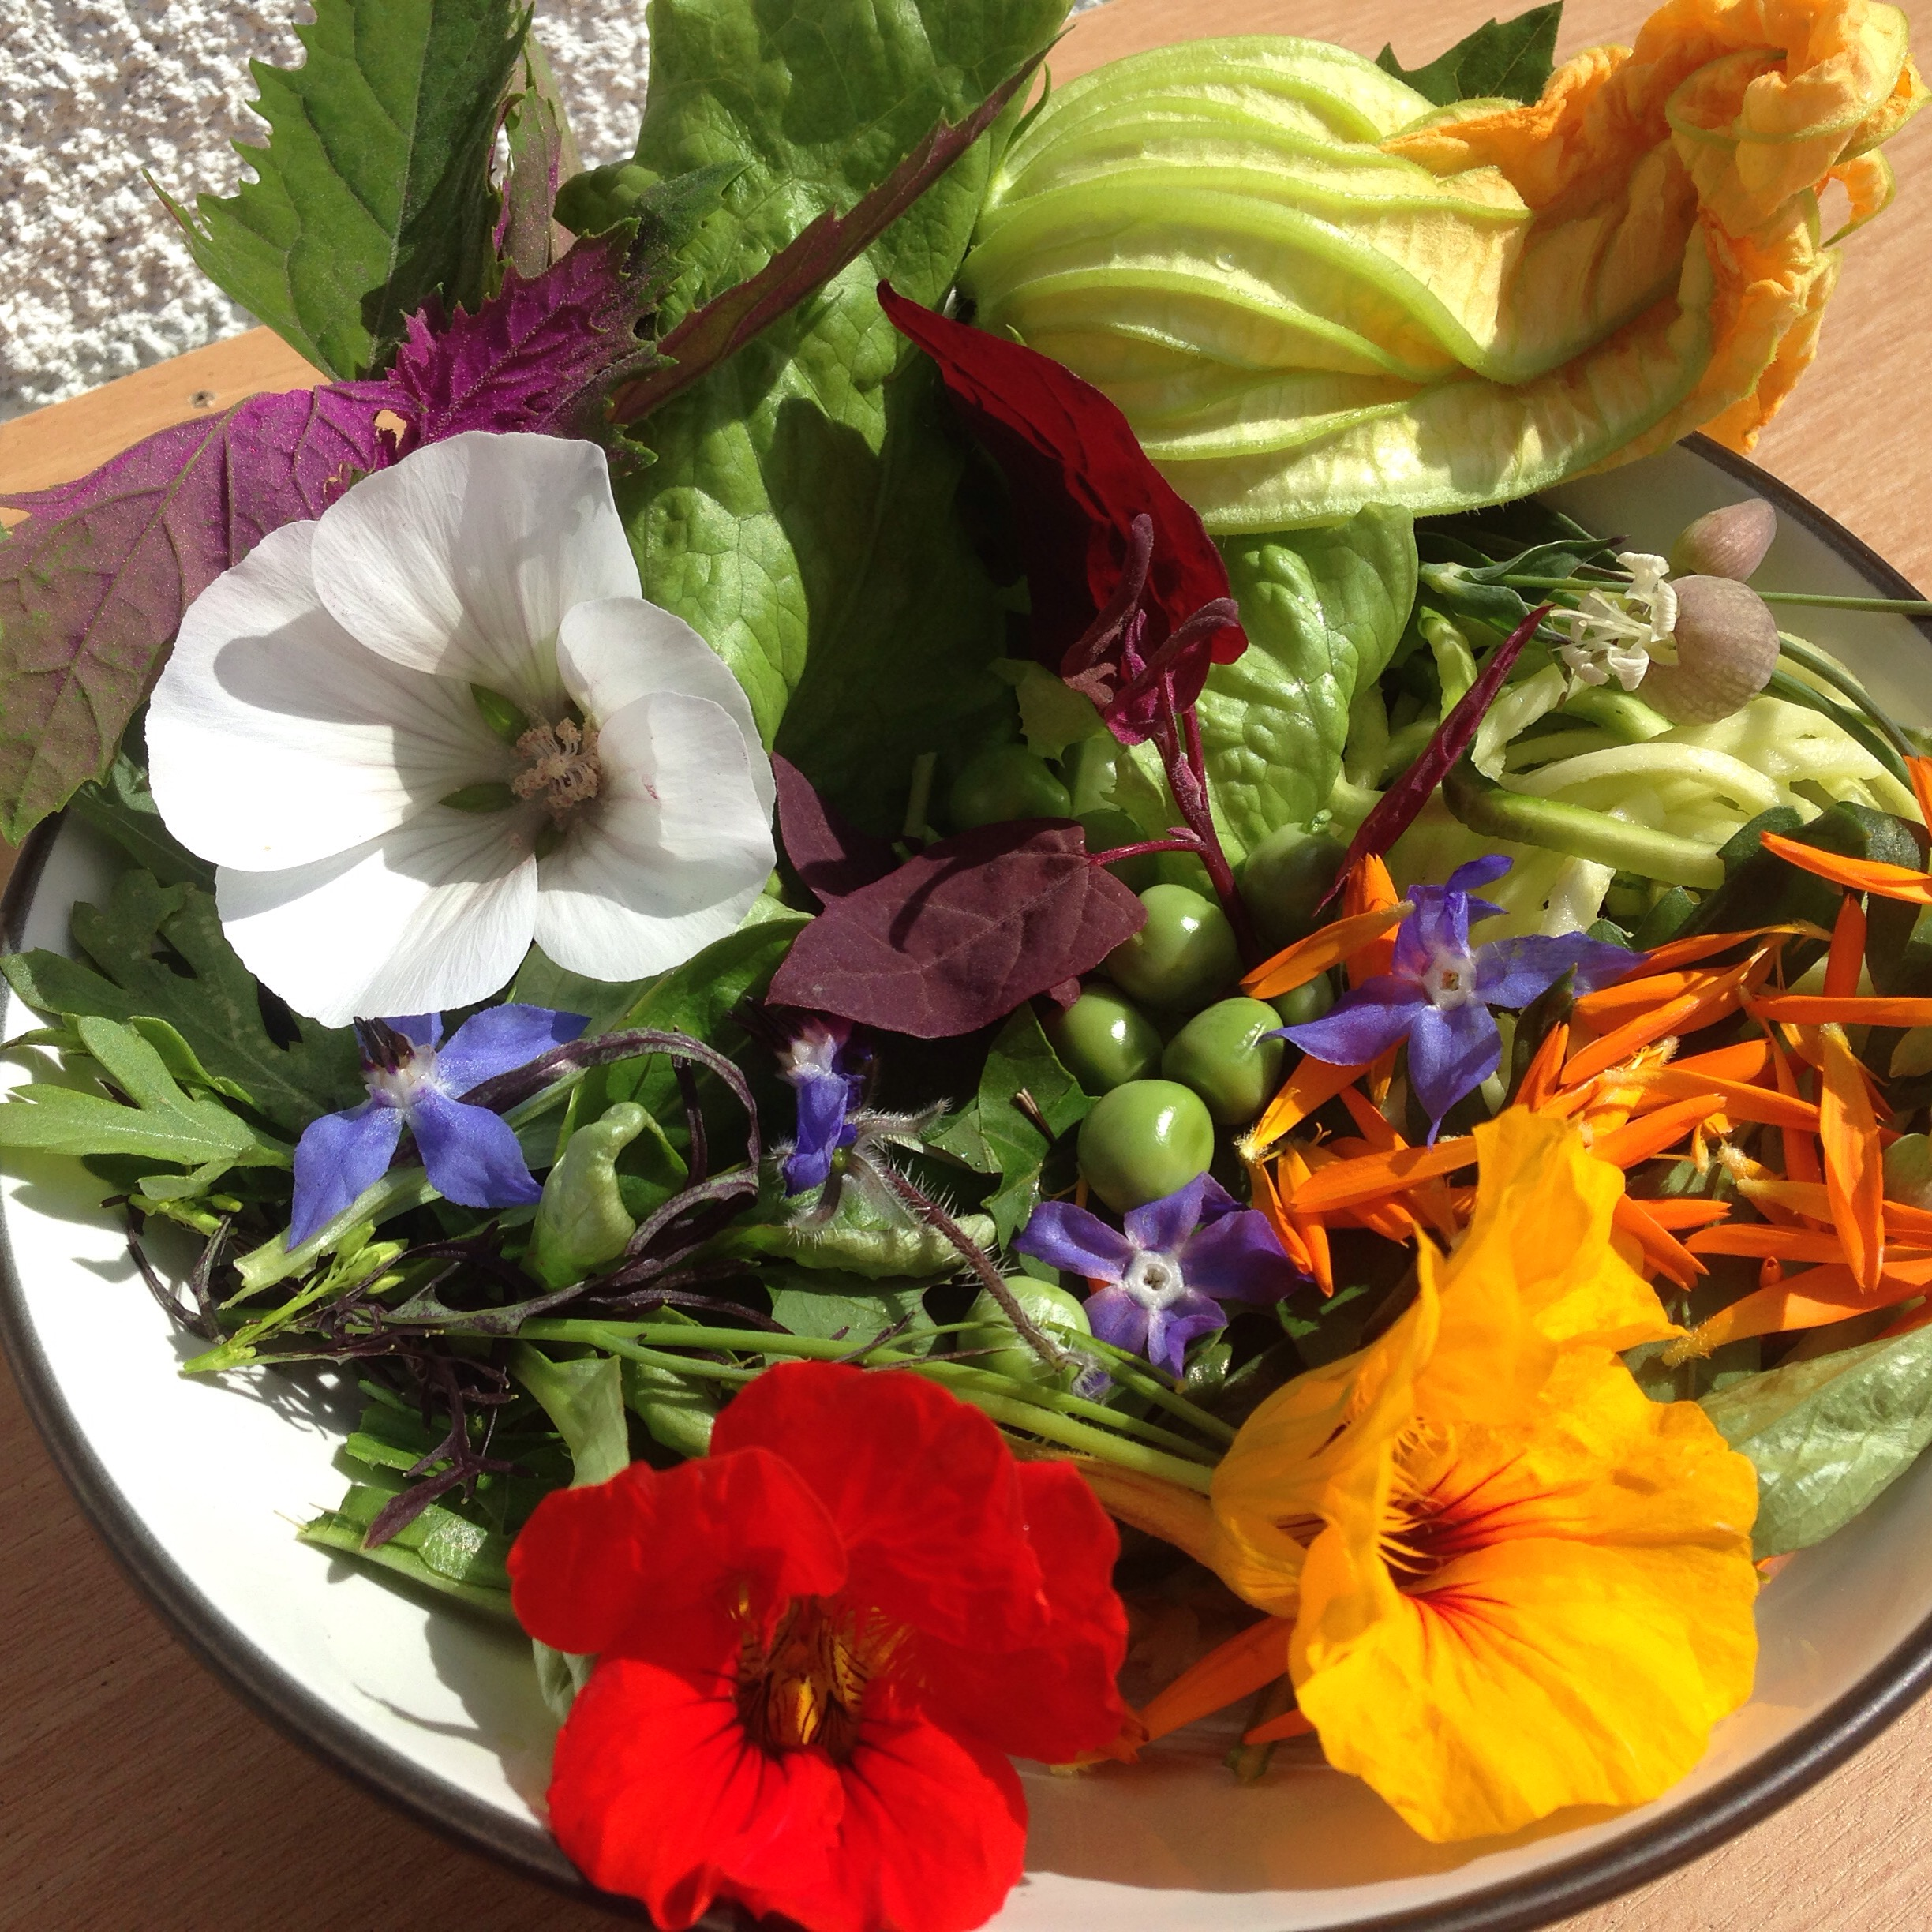 Edible flowers all grown by PJ taste